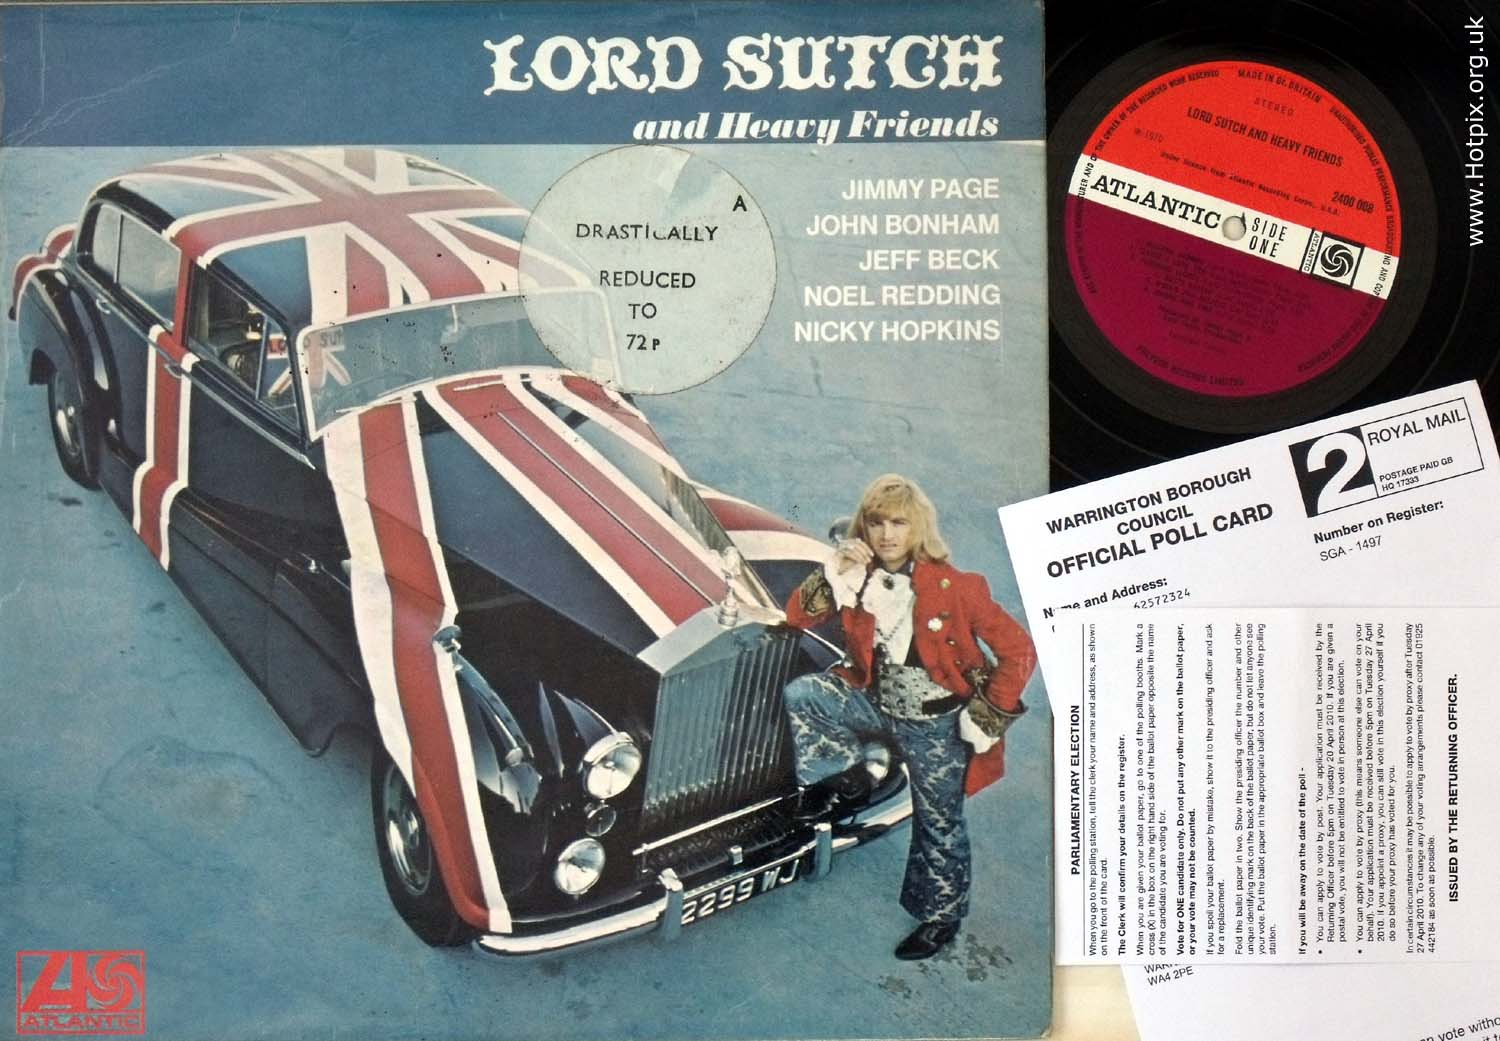 2010,british,uk,general,election,politics,parliament,polling,party,political,vinyl,album,lord Sutch and heavy friends,jimmy,page,music,musicians,sex,sexy,history,old,hotpix!